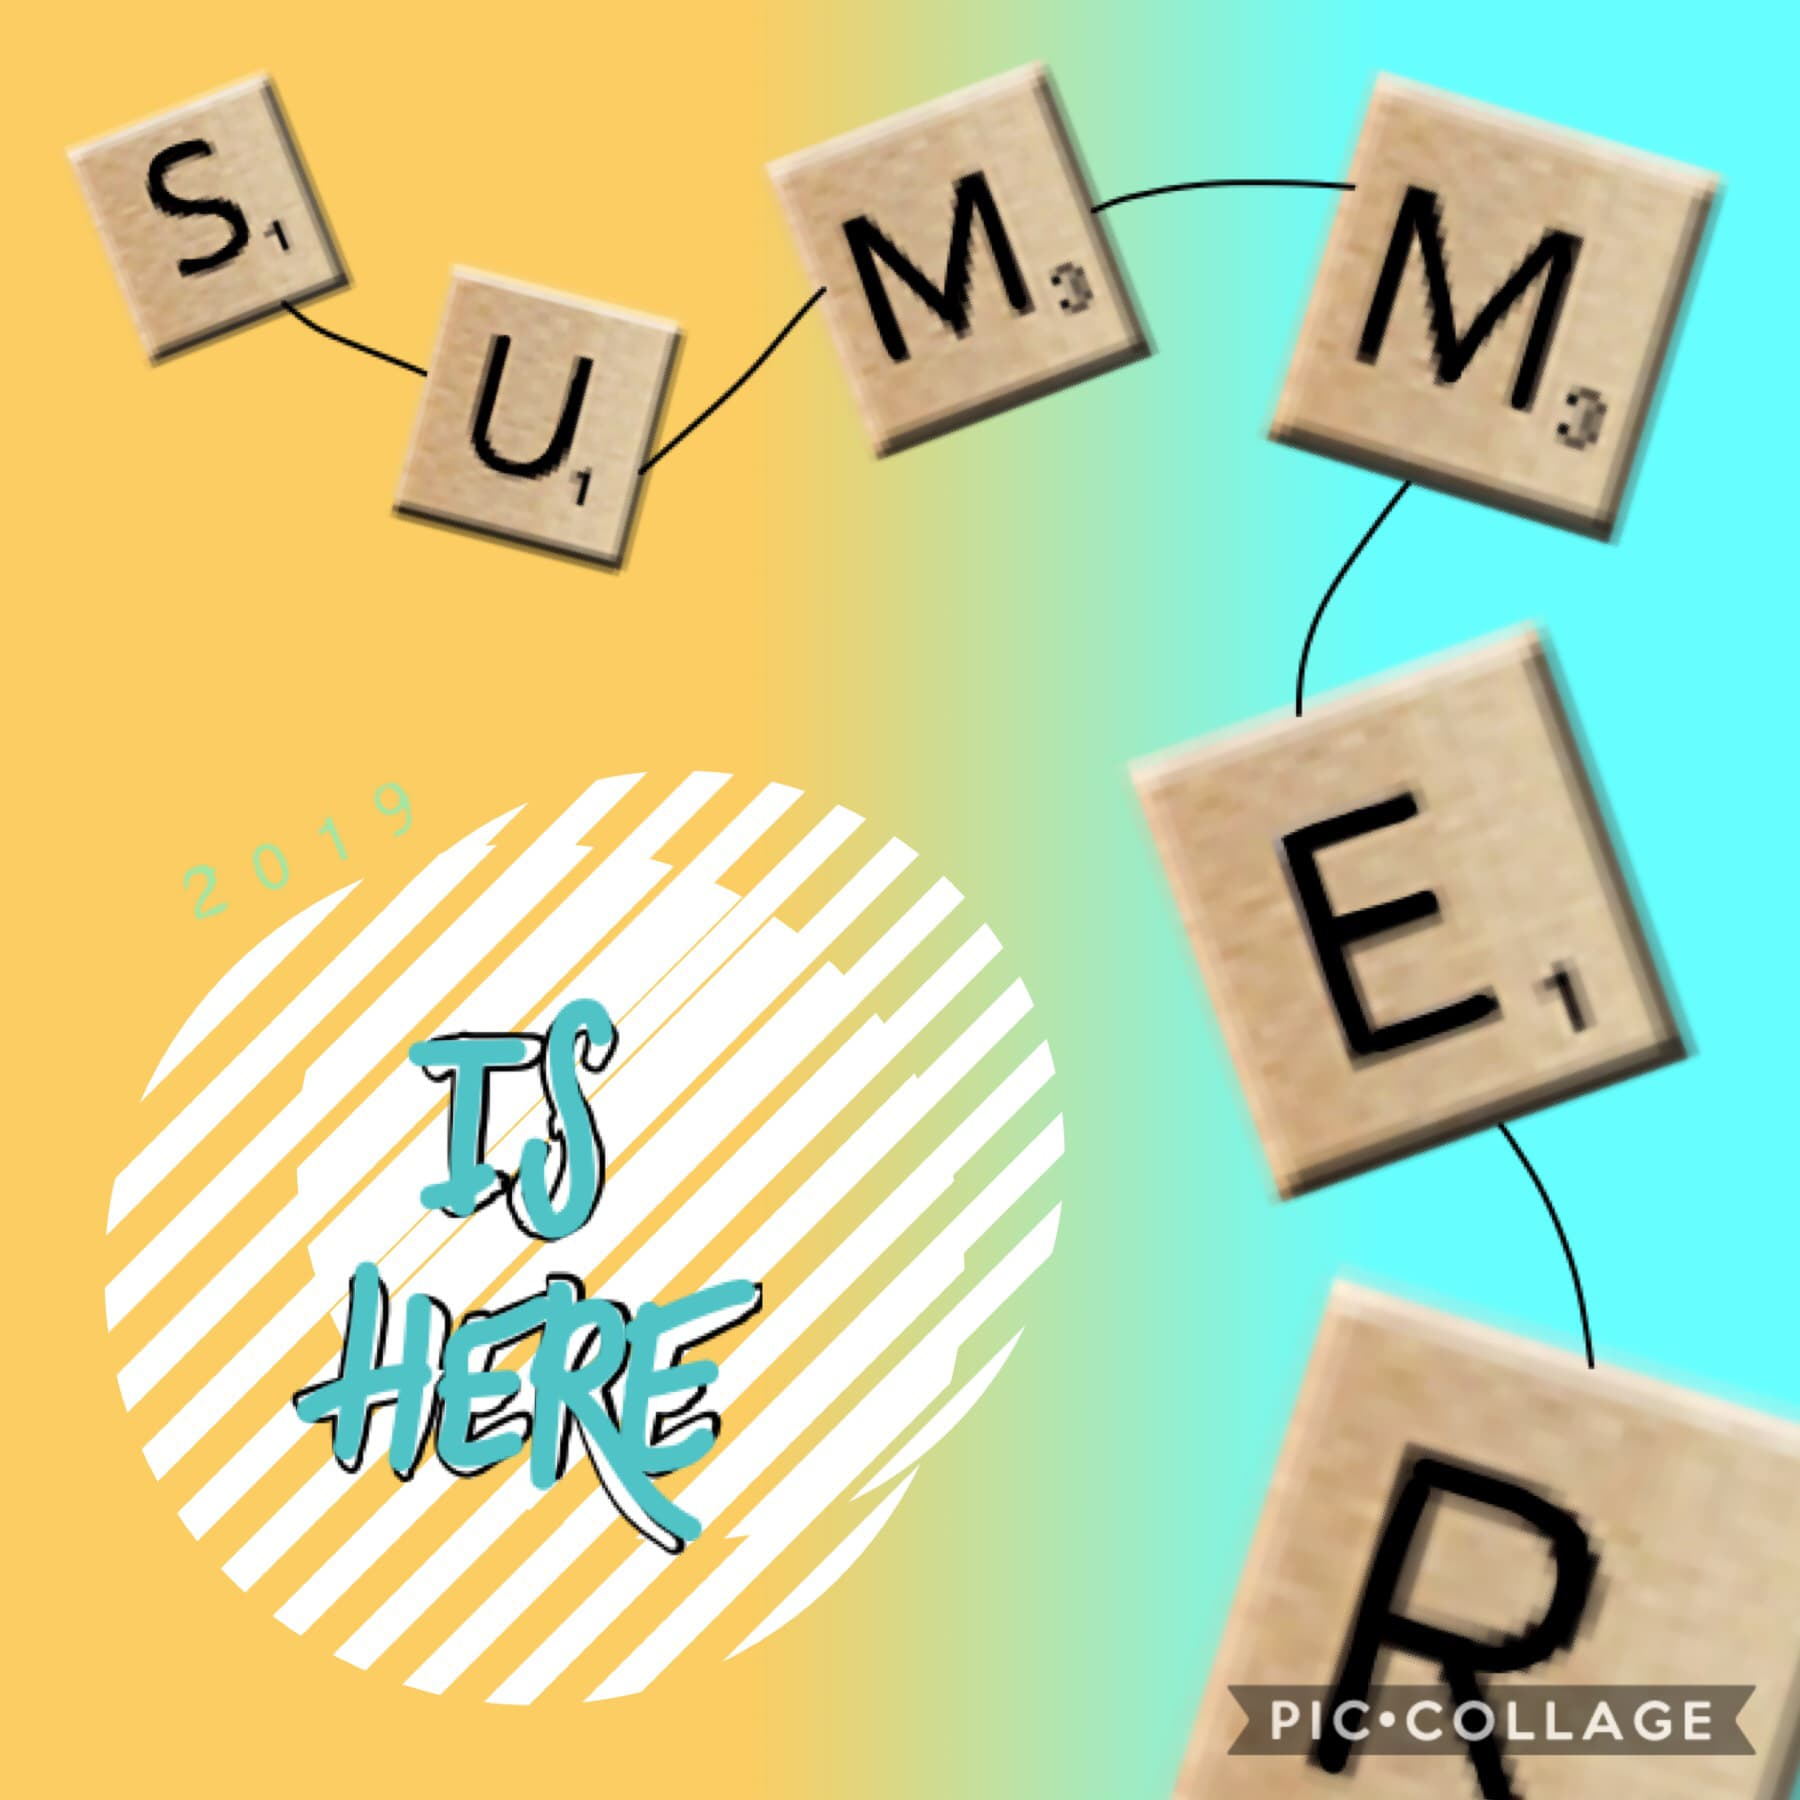 Happy first day of summer! 😎 2️⃣0️⃣1️⃣9️⃣ 🏝 🎆 🌞 🐚 💦 🎢 💚 🗓 🍦 🧳 I can't wait for fall tbh, I hate summer. 🕷 😅 🍁 I mean yeah certain stuff is fun, but I can only do things on weekends, and even that is hardly anything, so it's unfortunate for me. 🤷🏻‍♀️